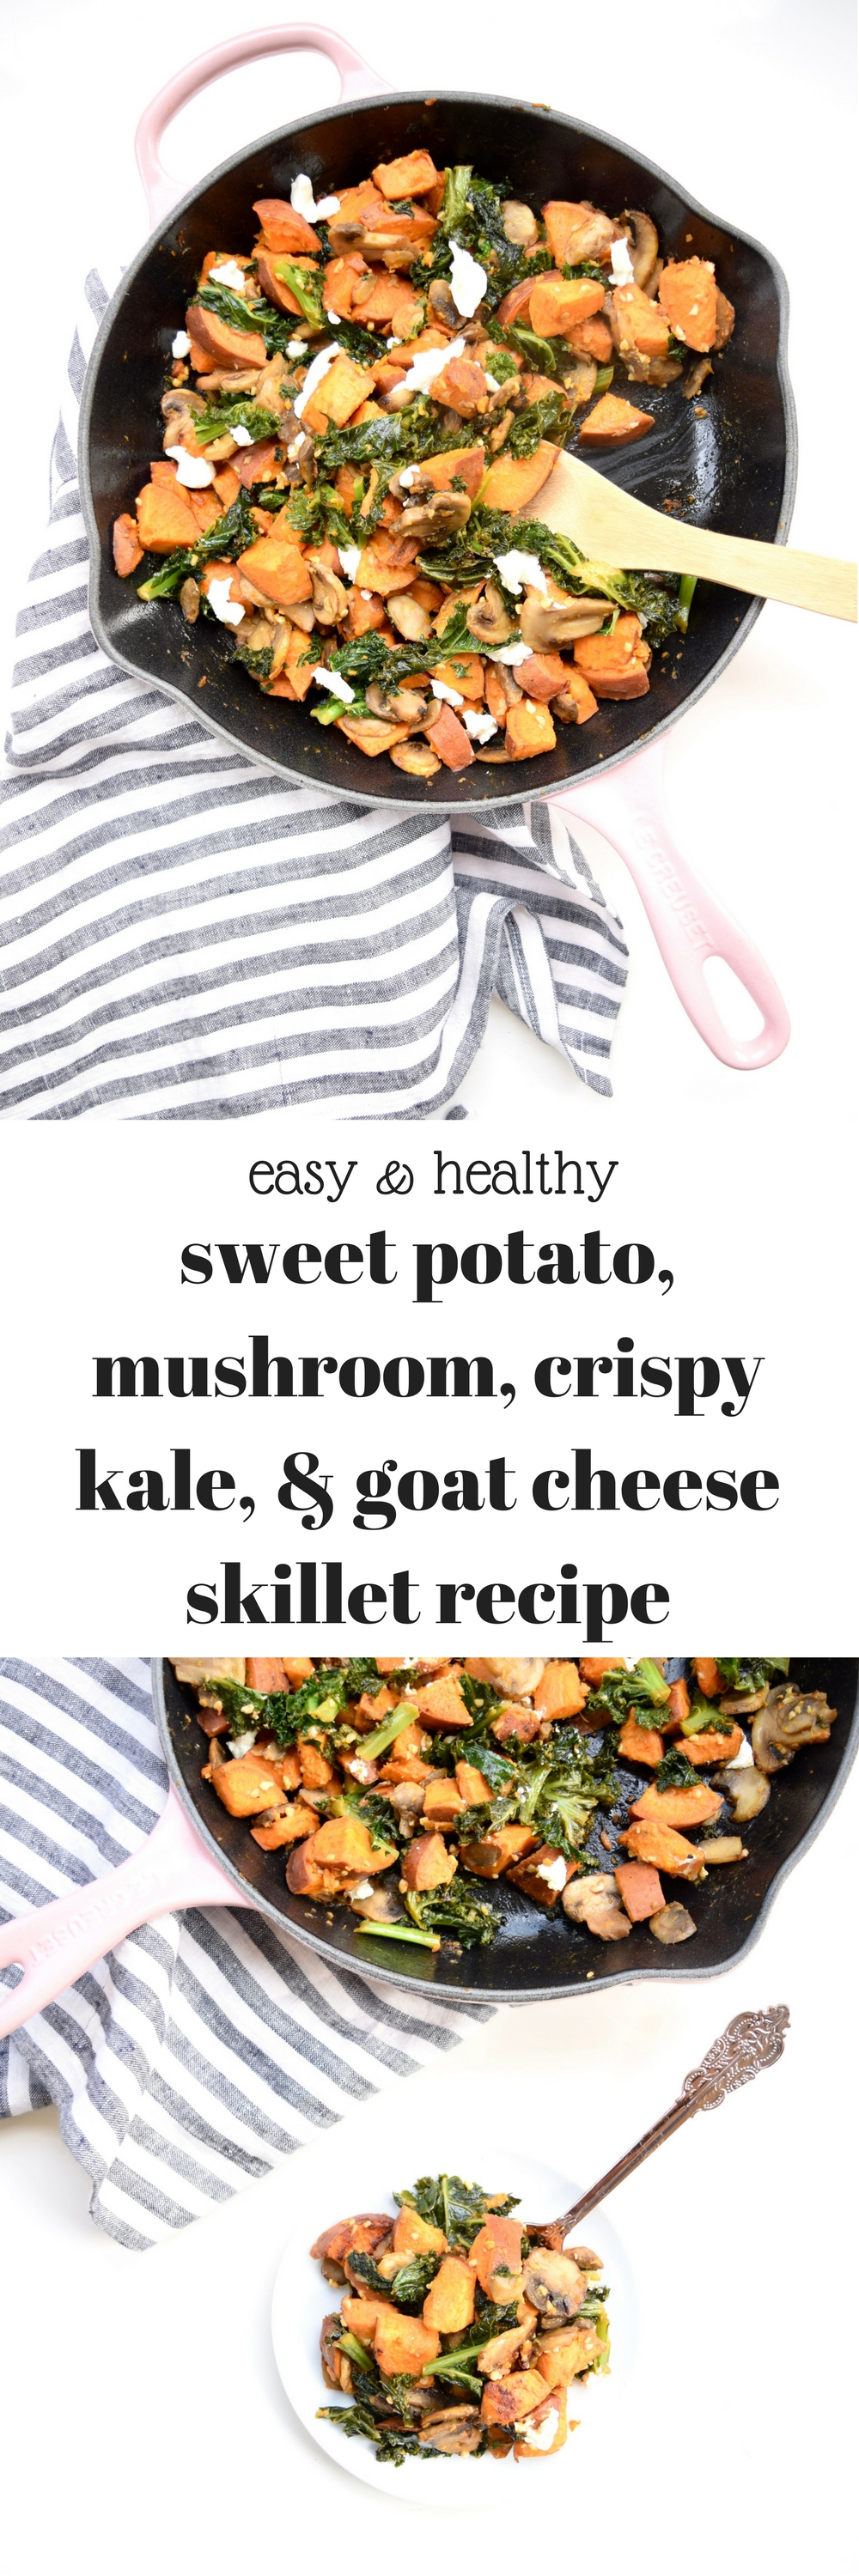 Sweet Potato Mushroom Crispy Kale & Goat Cheese Skillet Recipe